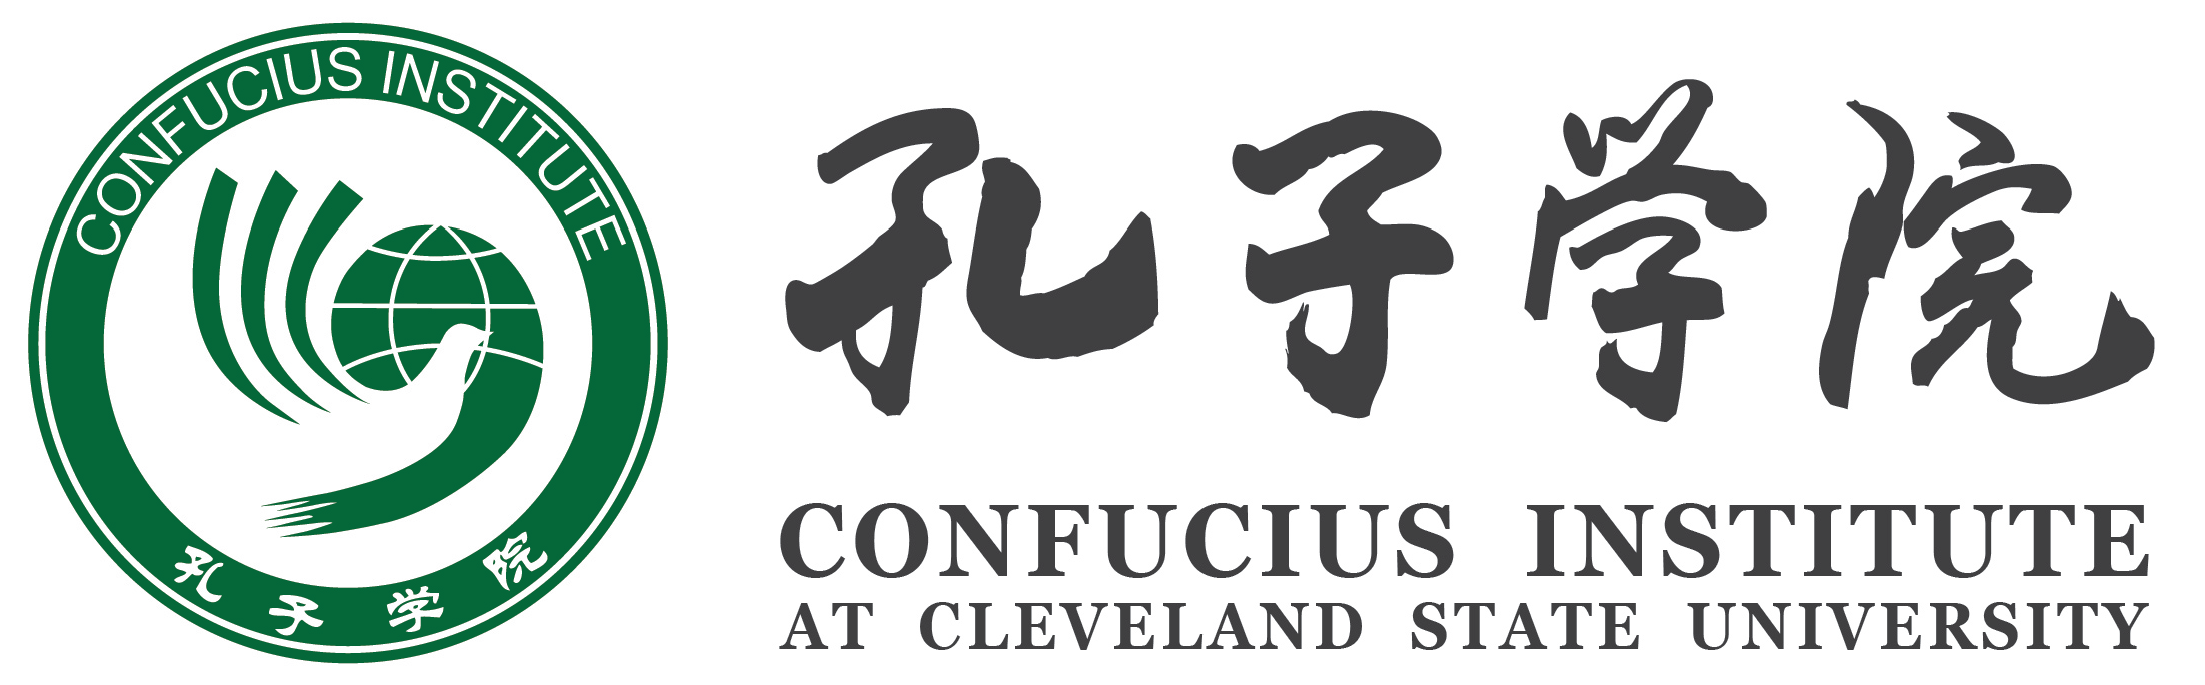 Confucious Institute at Cleveland State University